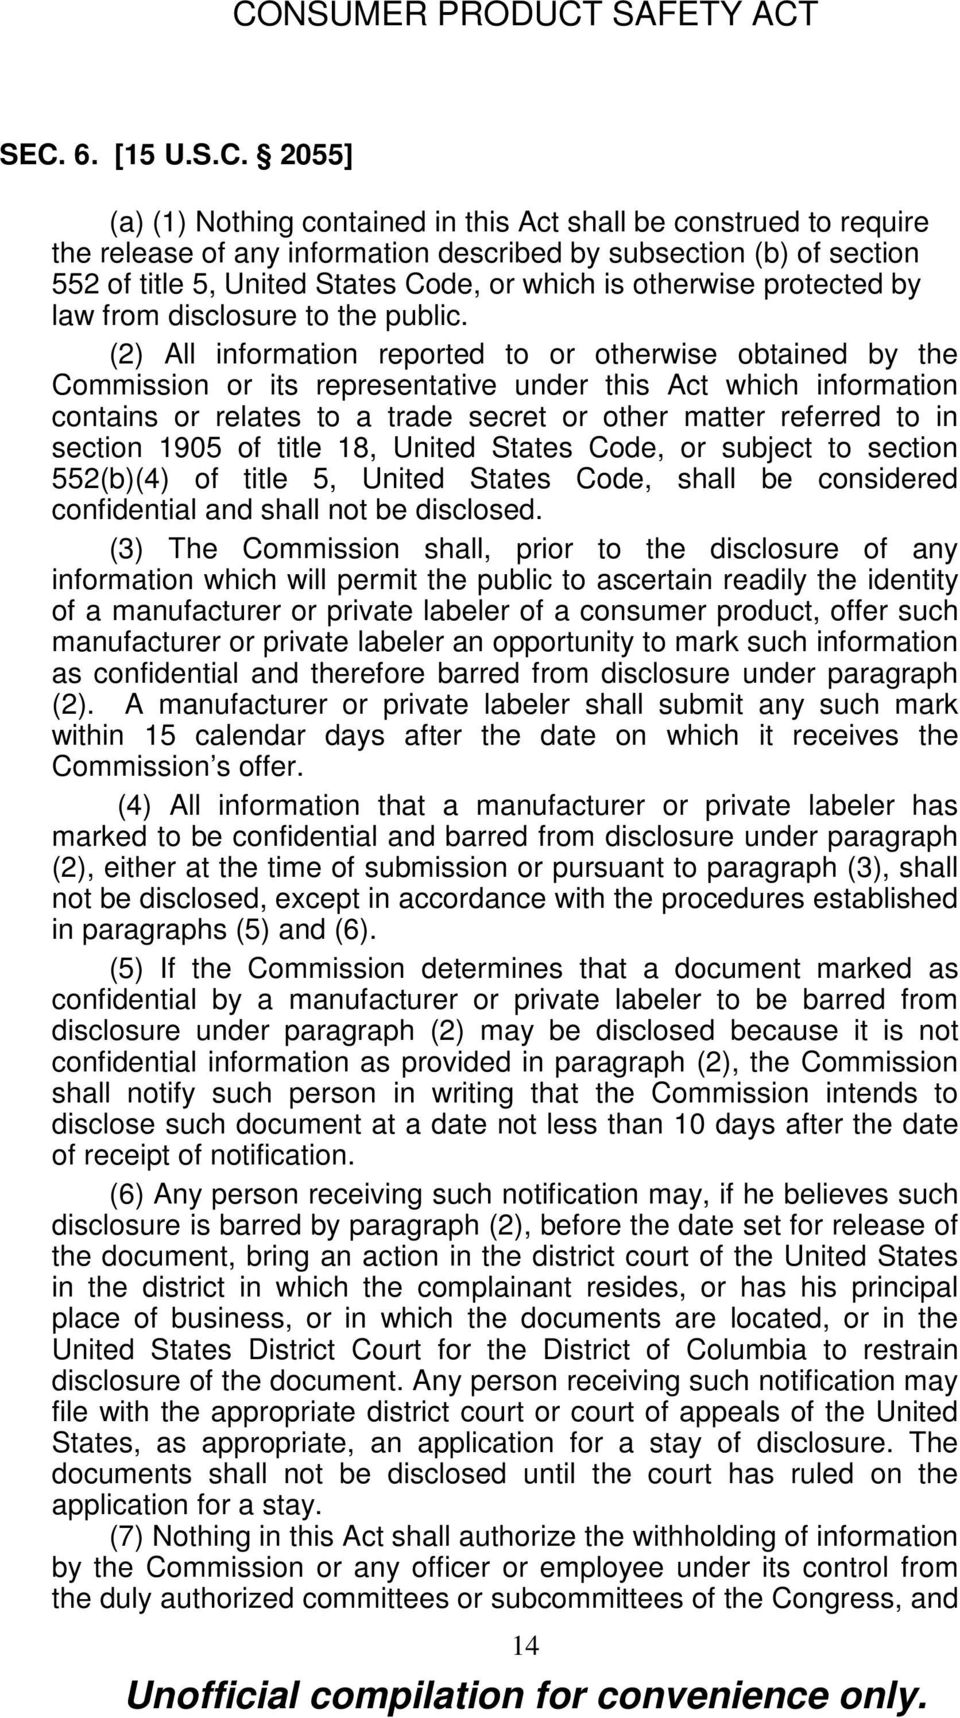 (2) All information reported to or otherwise obtained by the Commission or its representative under this Act which information contains or relates to a trade secret or other matter referred to in